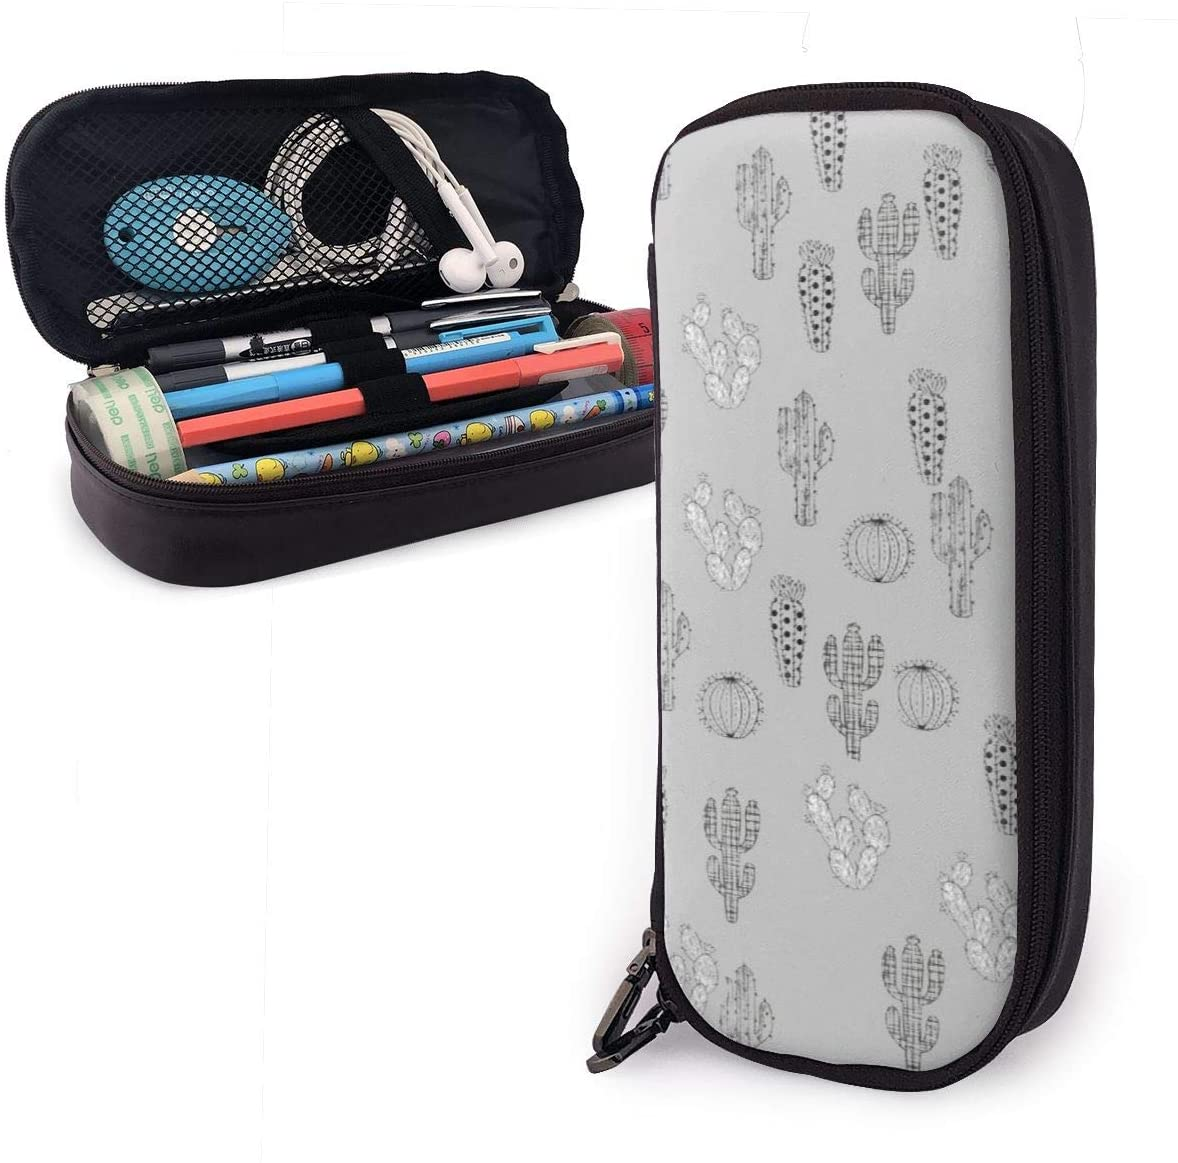 XUJ YOGA High-Grade Waterproof PU Leather Black and White Cactus Grey Pencil Case Big Capacity Pen Case Desk Organizer with Double Zipper for School & Office Supplies - 8x3.5x1.5 Inches